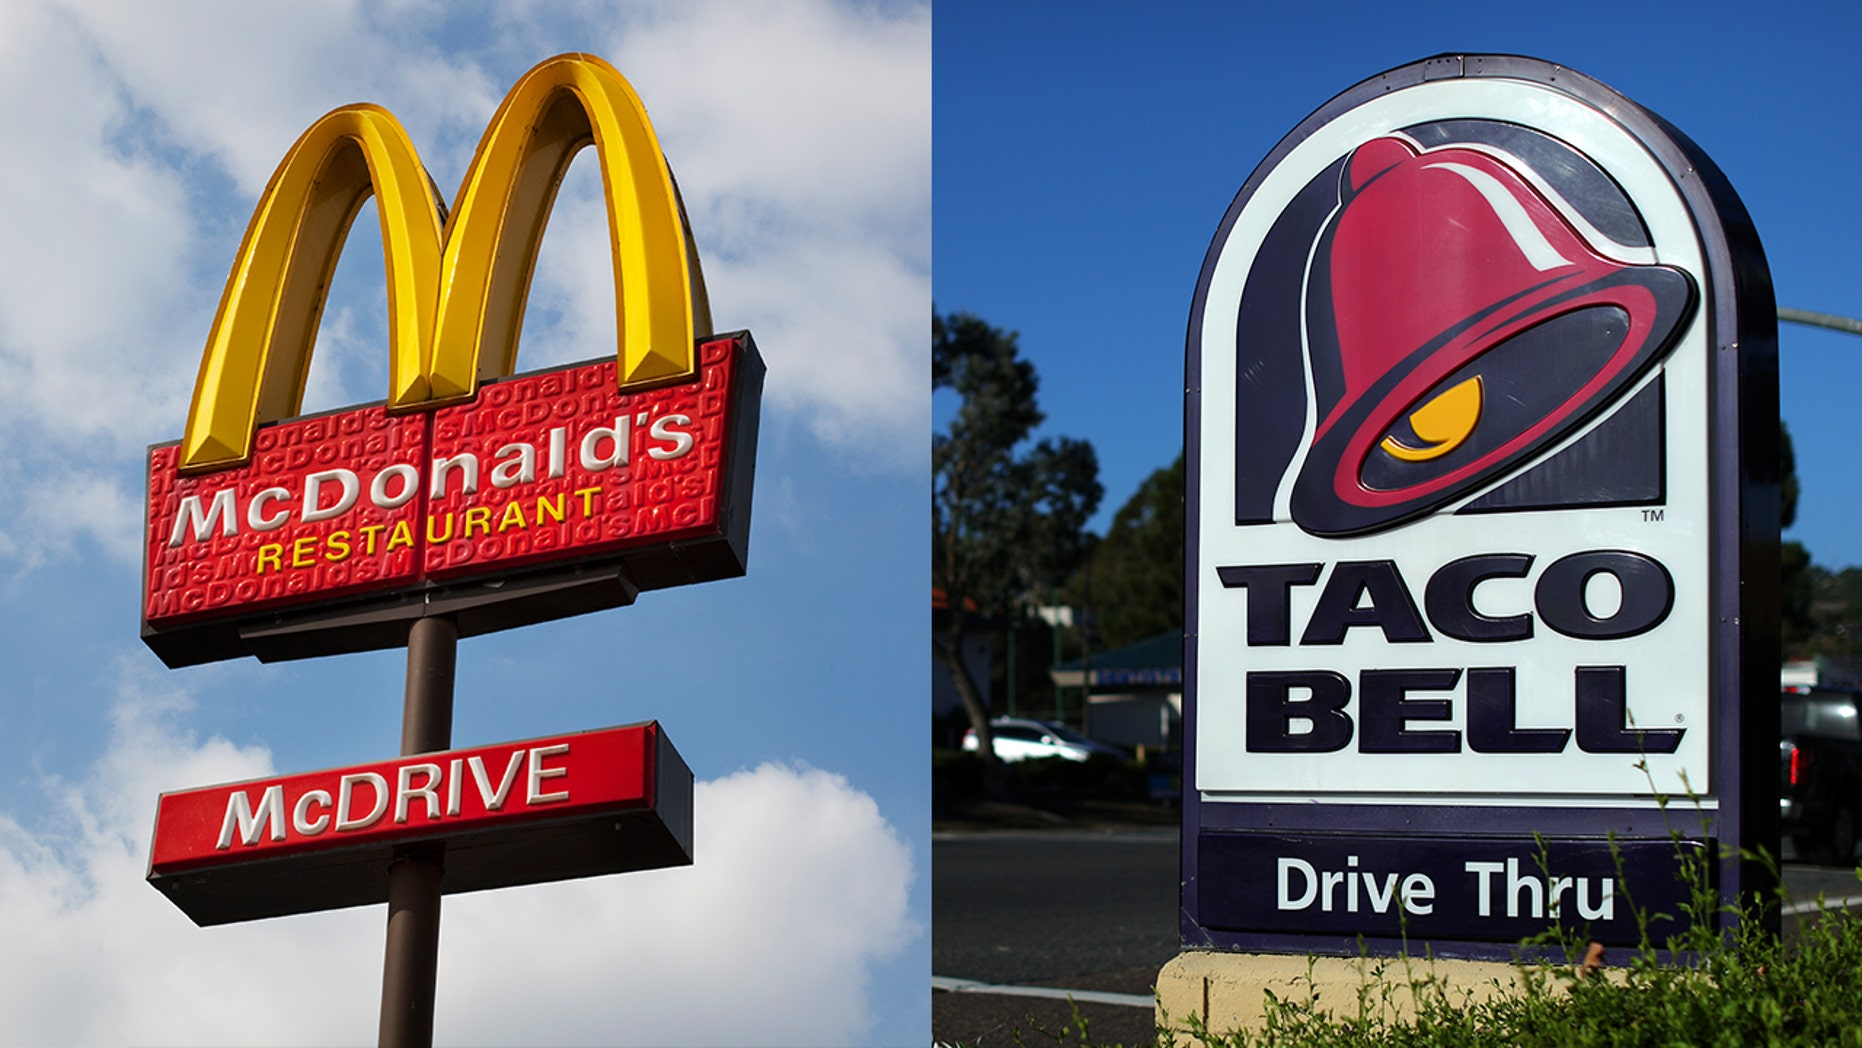 McDonald's and Taco Bell both announced new dollar menu updates for the new year.